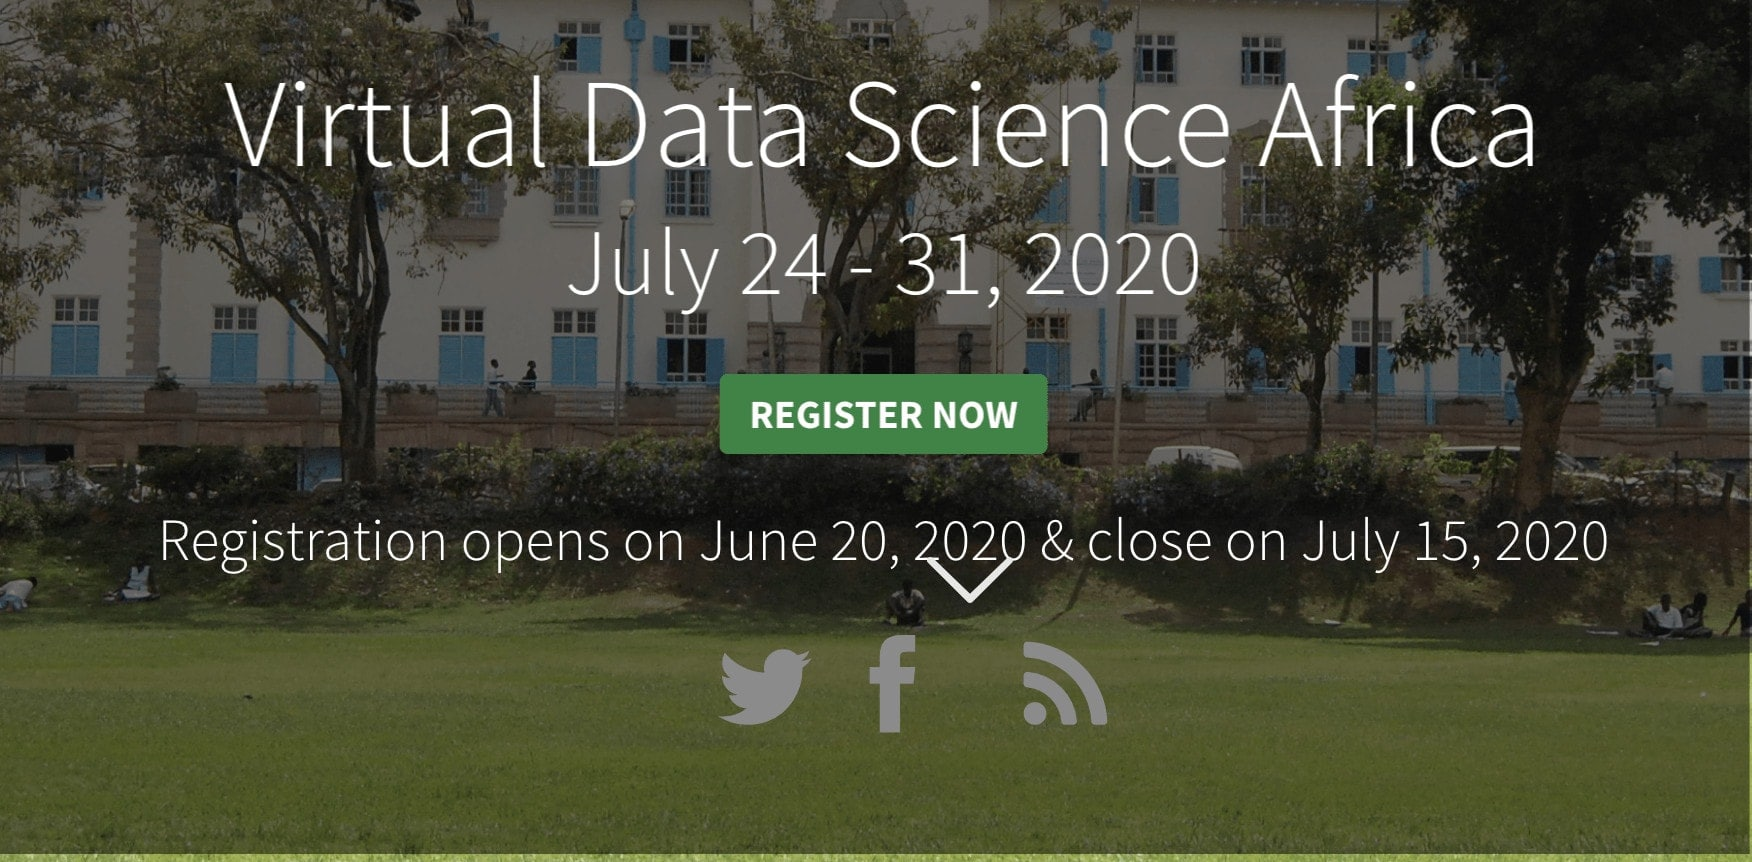 Data Science Africa 2020 1